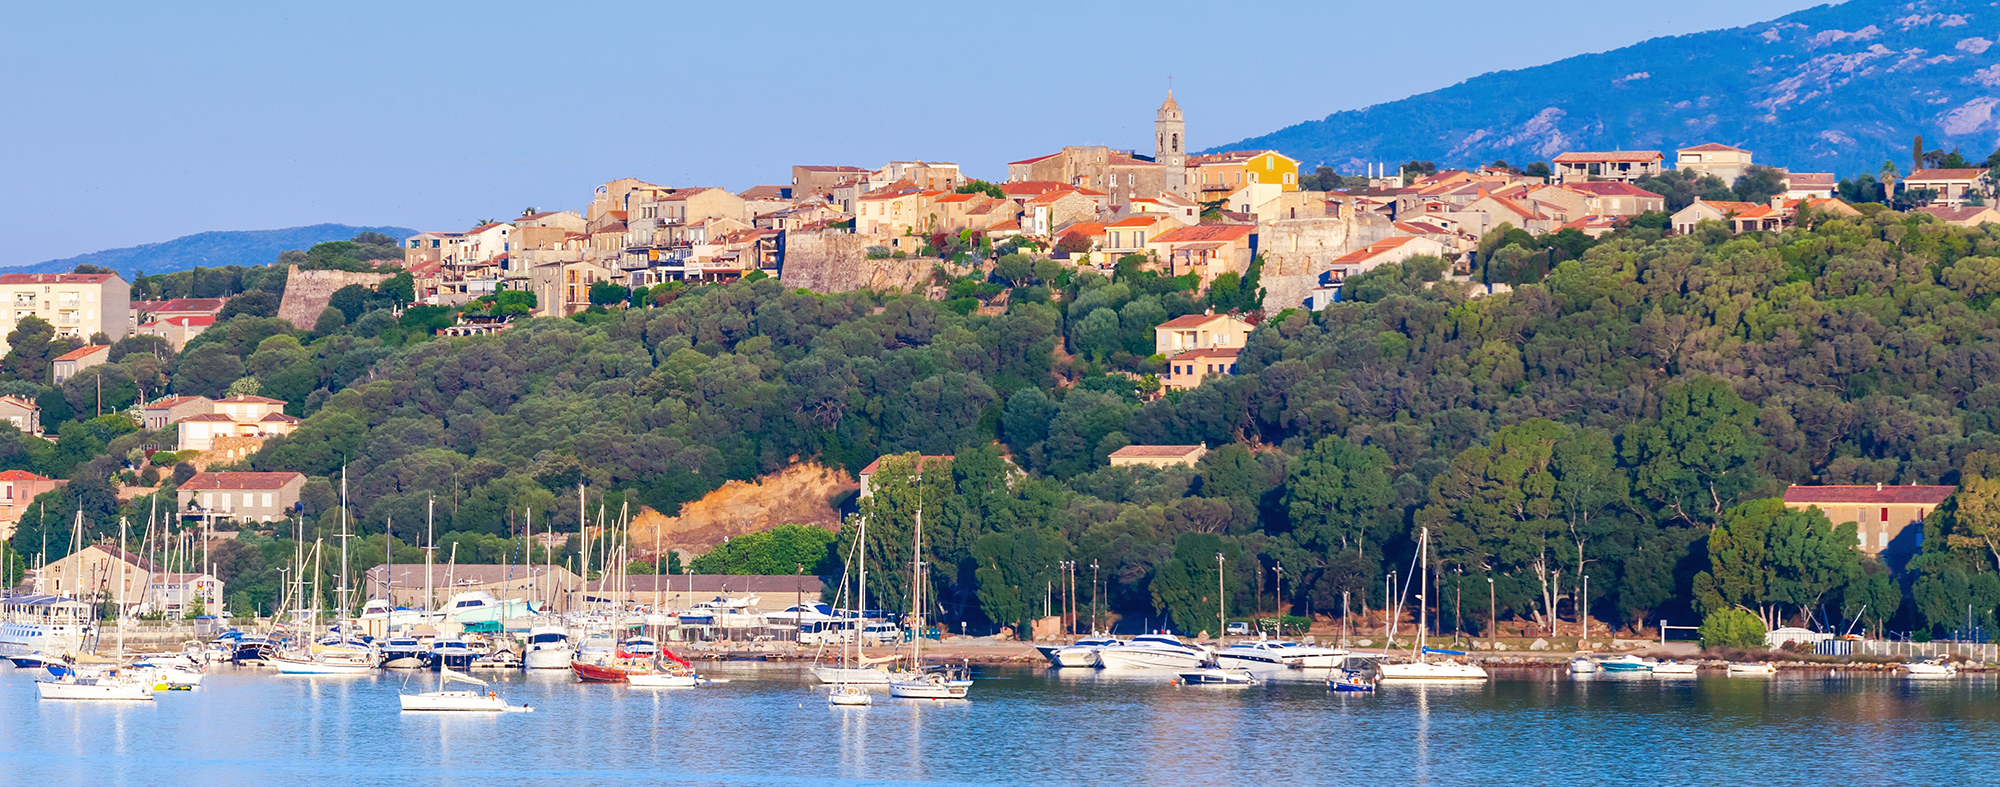 Porto Vecchio is a popular yachting hotspot